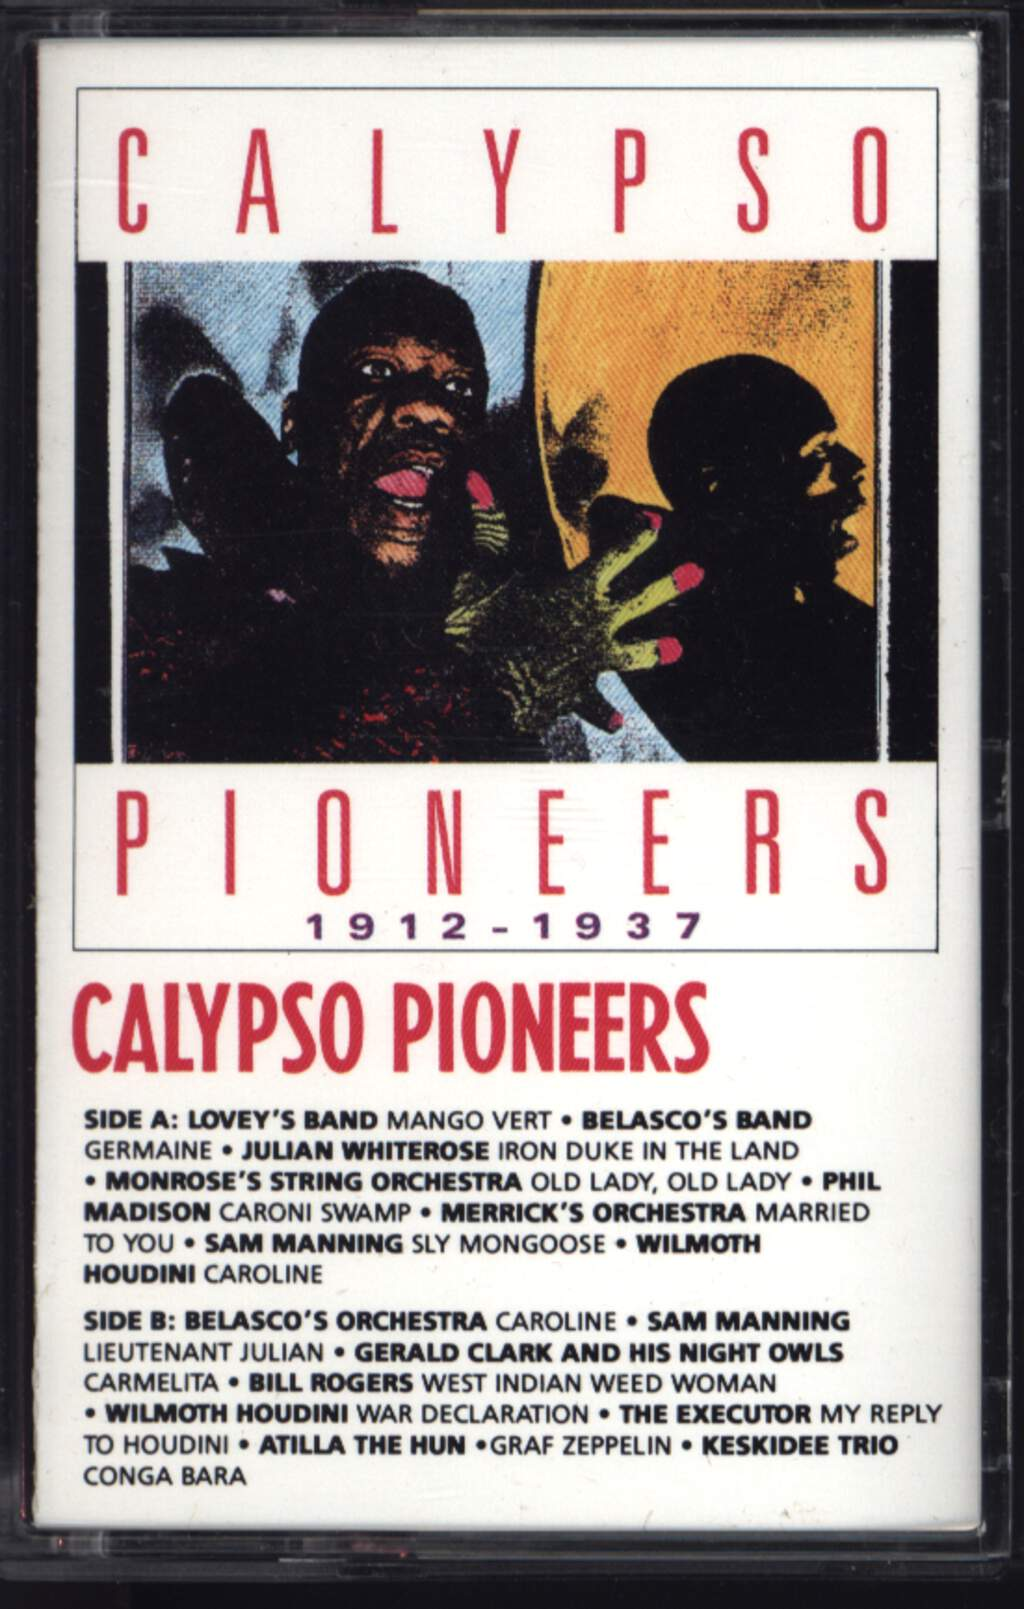 Various: Calypso Pioneers (1912-1937), Compact Cassette